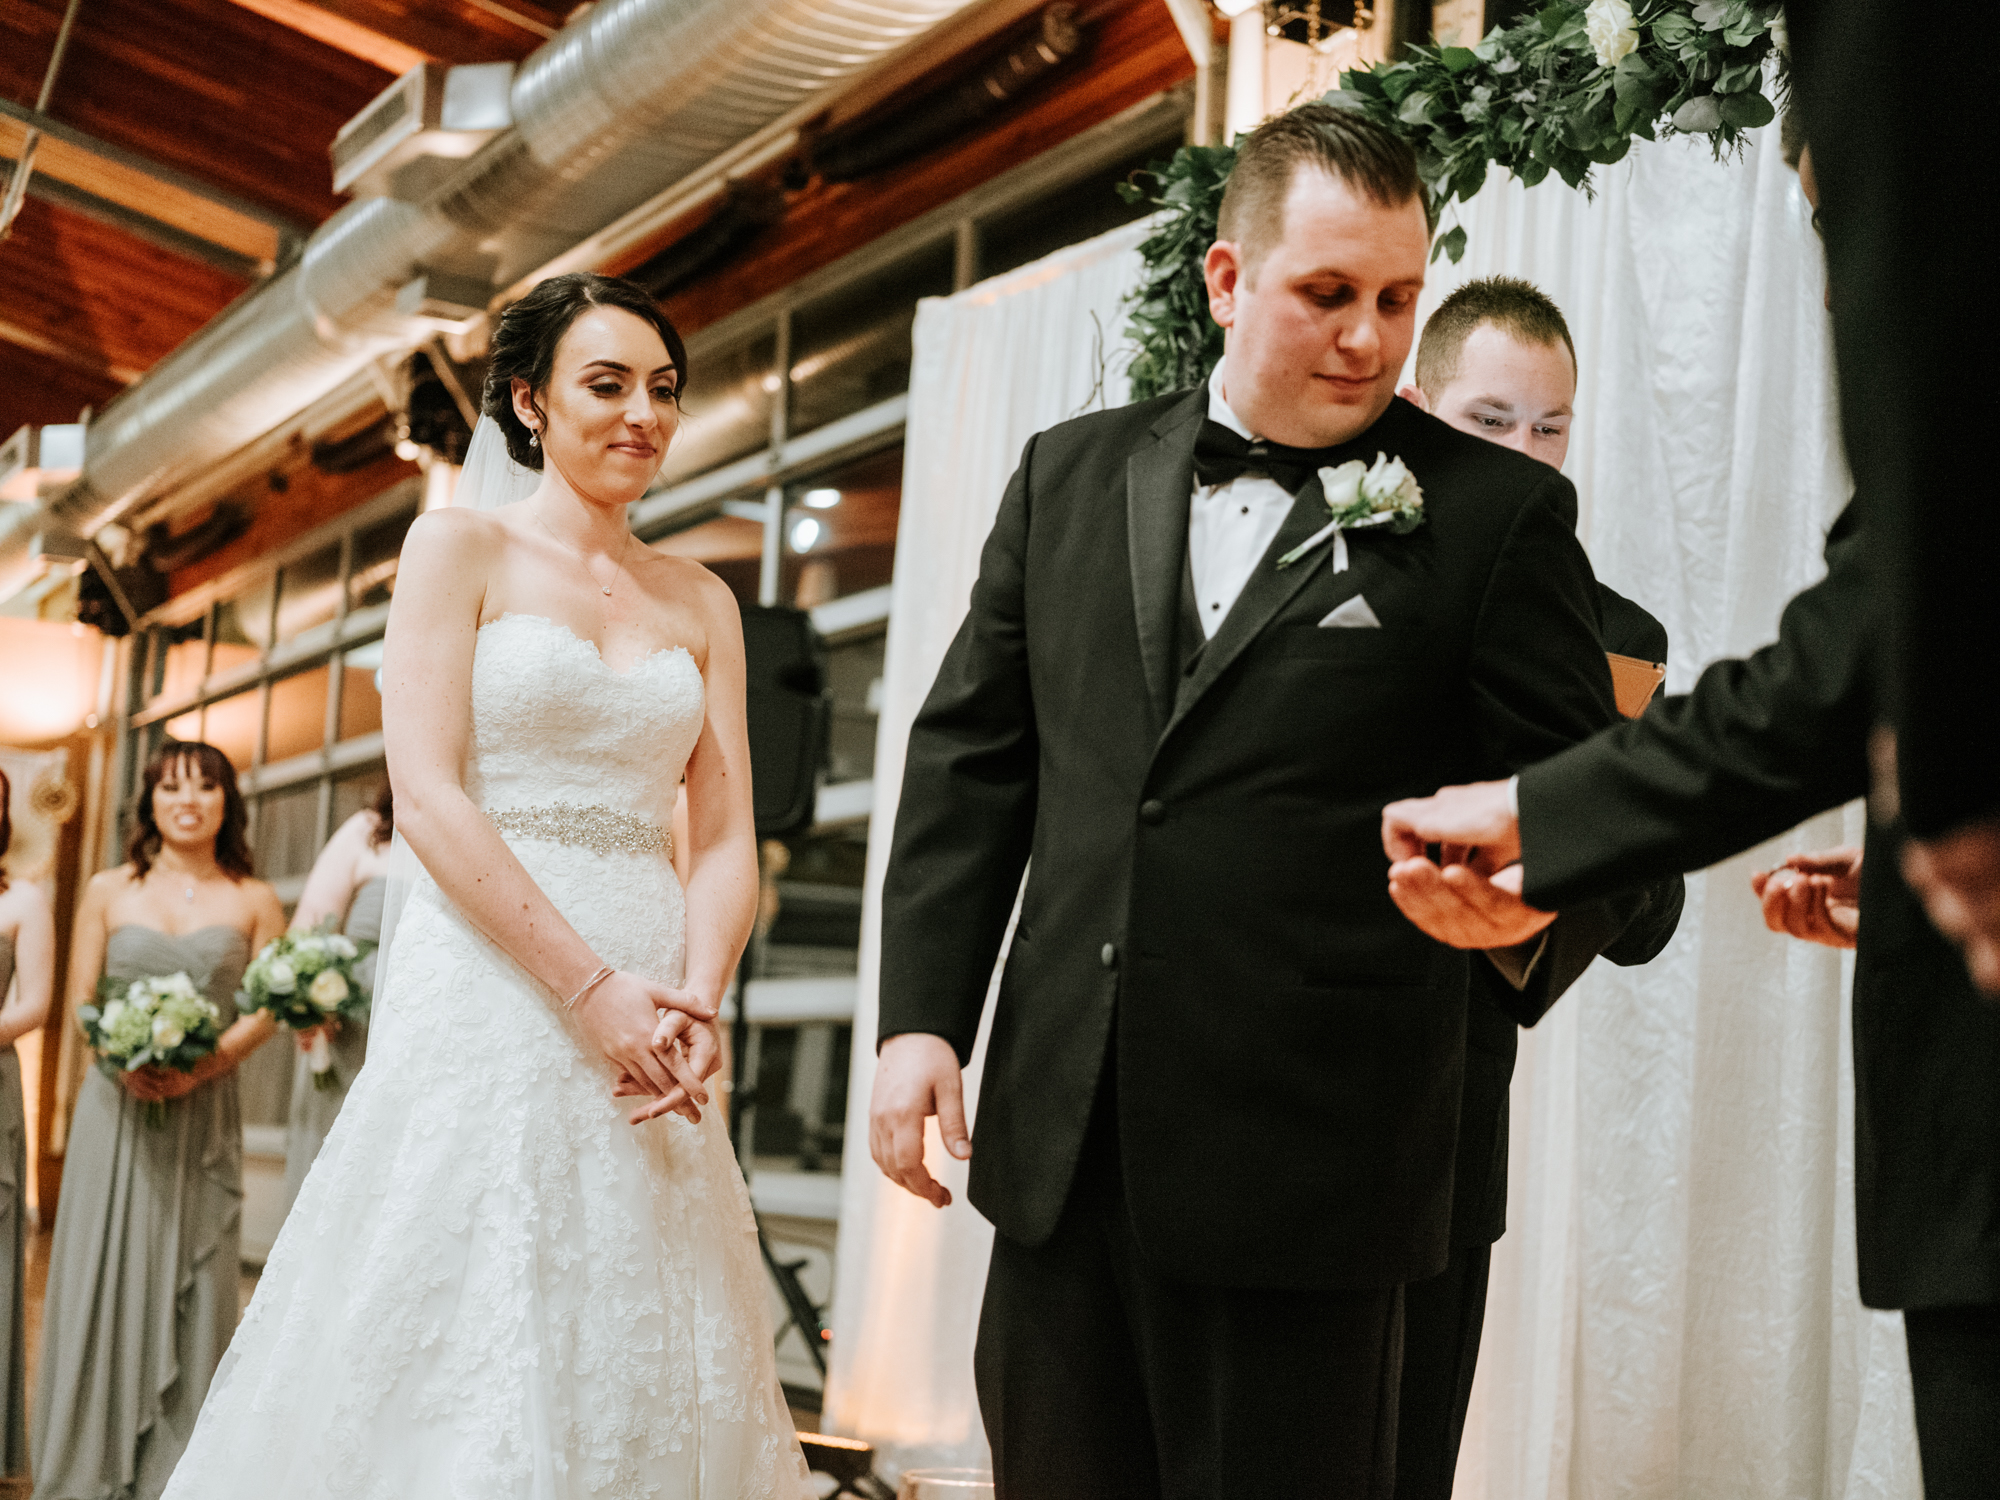 Stolen Glimpses Seattle Wedding Photographers 74.jpg